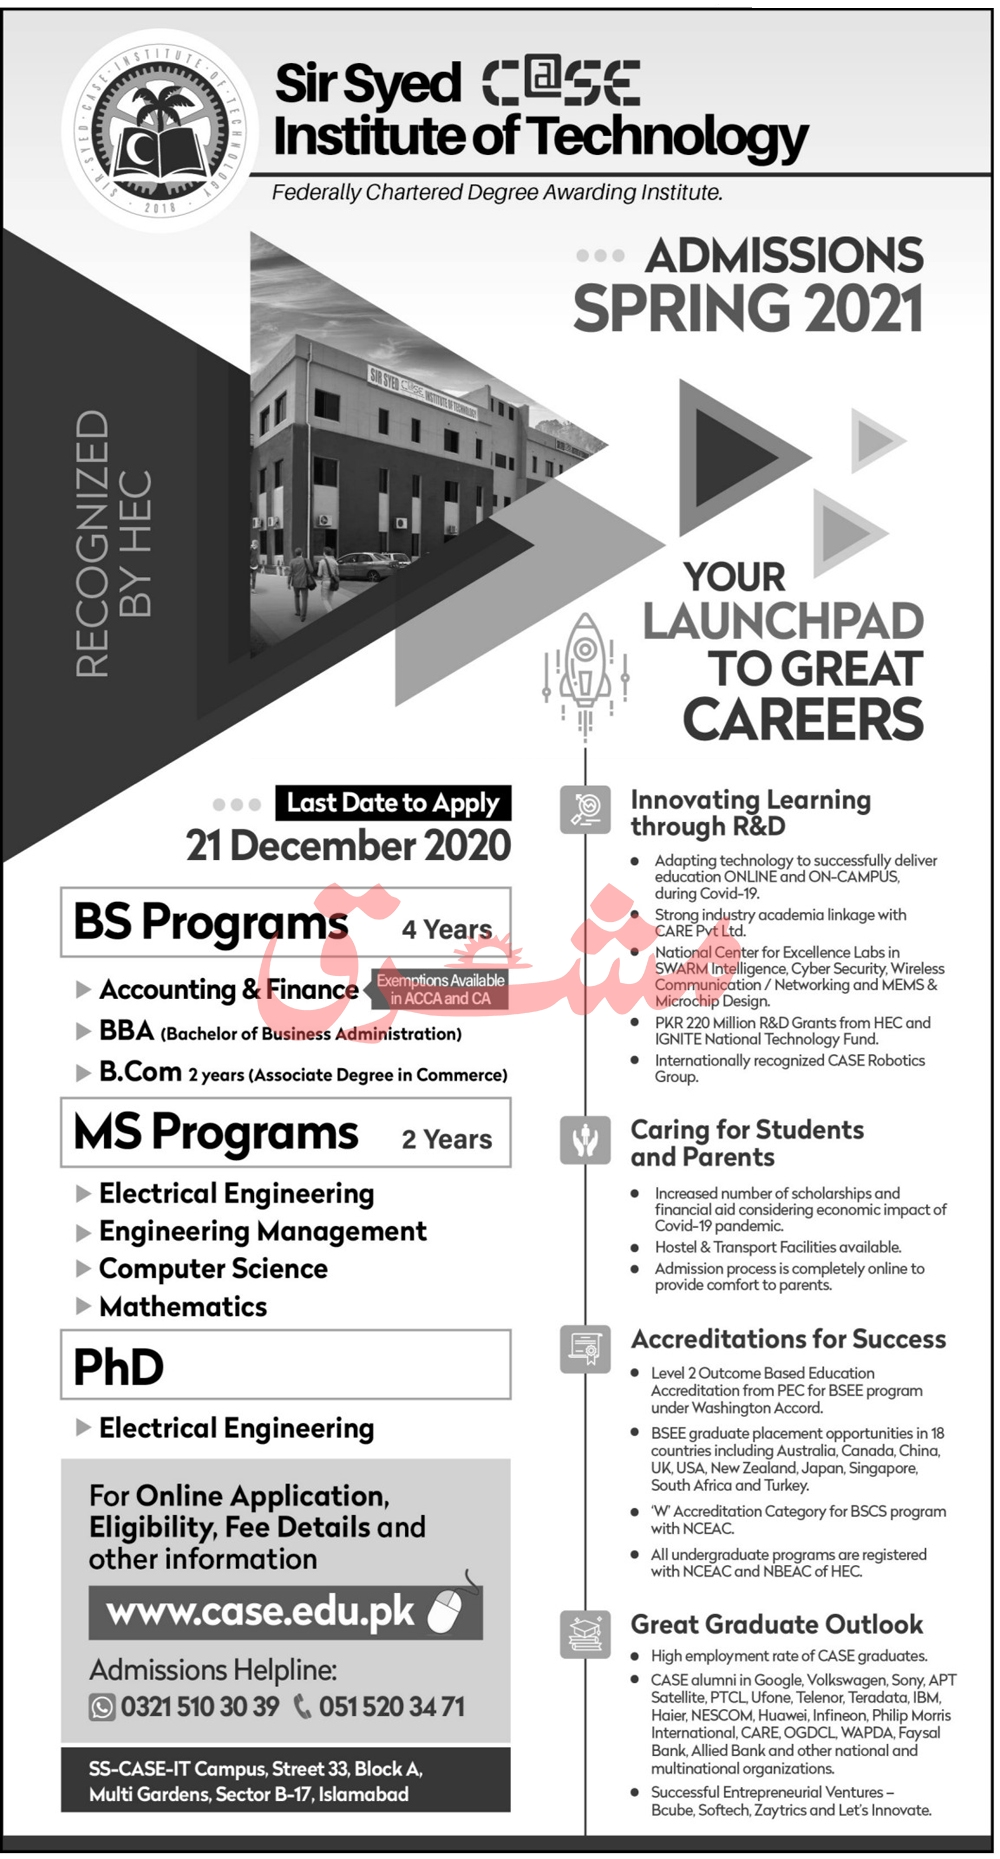 Sir Syed Case Institute Of Technology Admissions